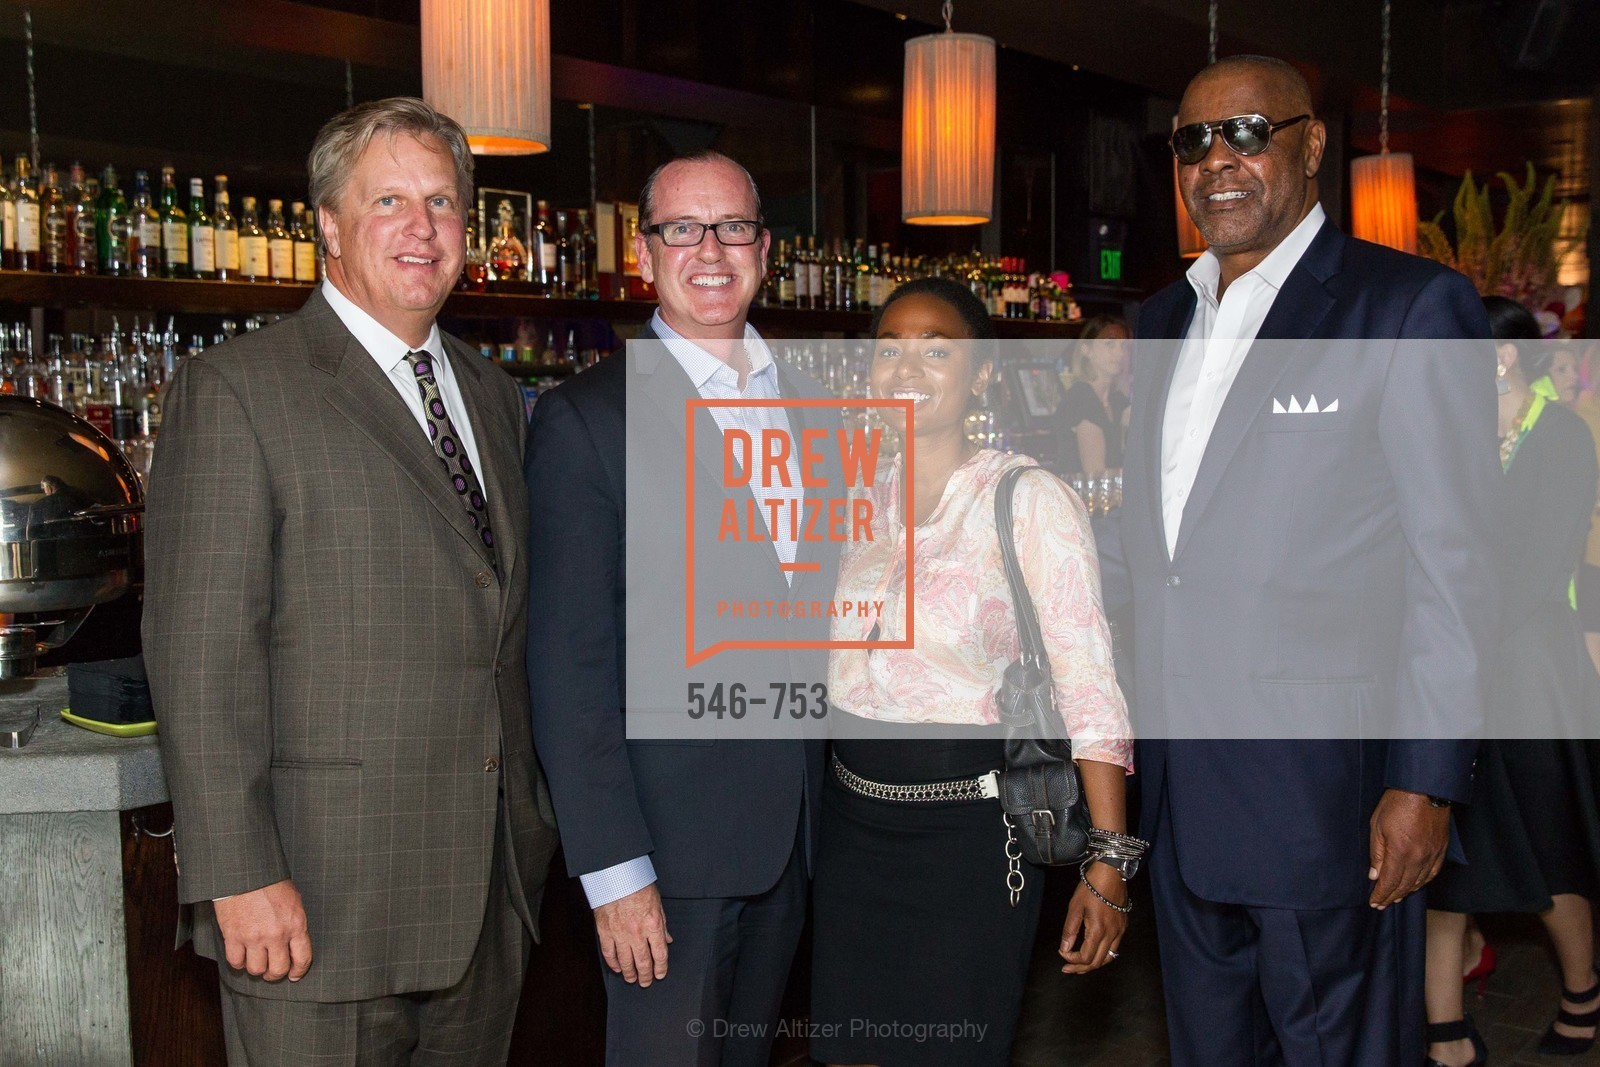 Michael Mohrrman, Joseph Deery, Keysha Bailey, Michael Baines, INSPIRED LUXE Launch Party Hosted by Denise Bradley Tyson, US, May 28th, 2015,Drew Altizer, Drew Altizer Photography, full-service agency, private events, San Francisco photographer, photographer california